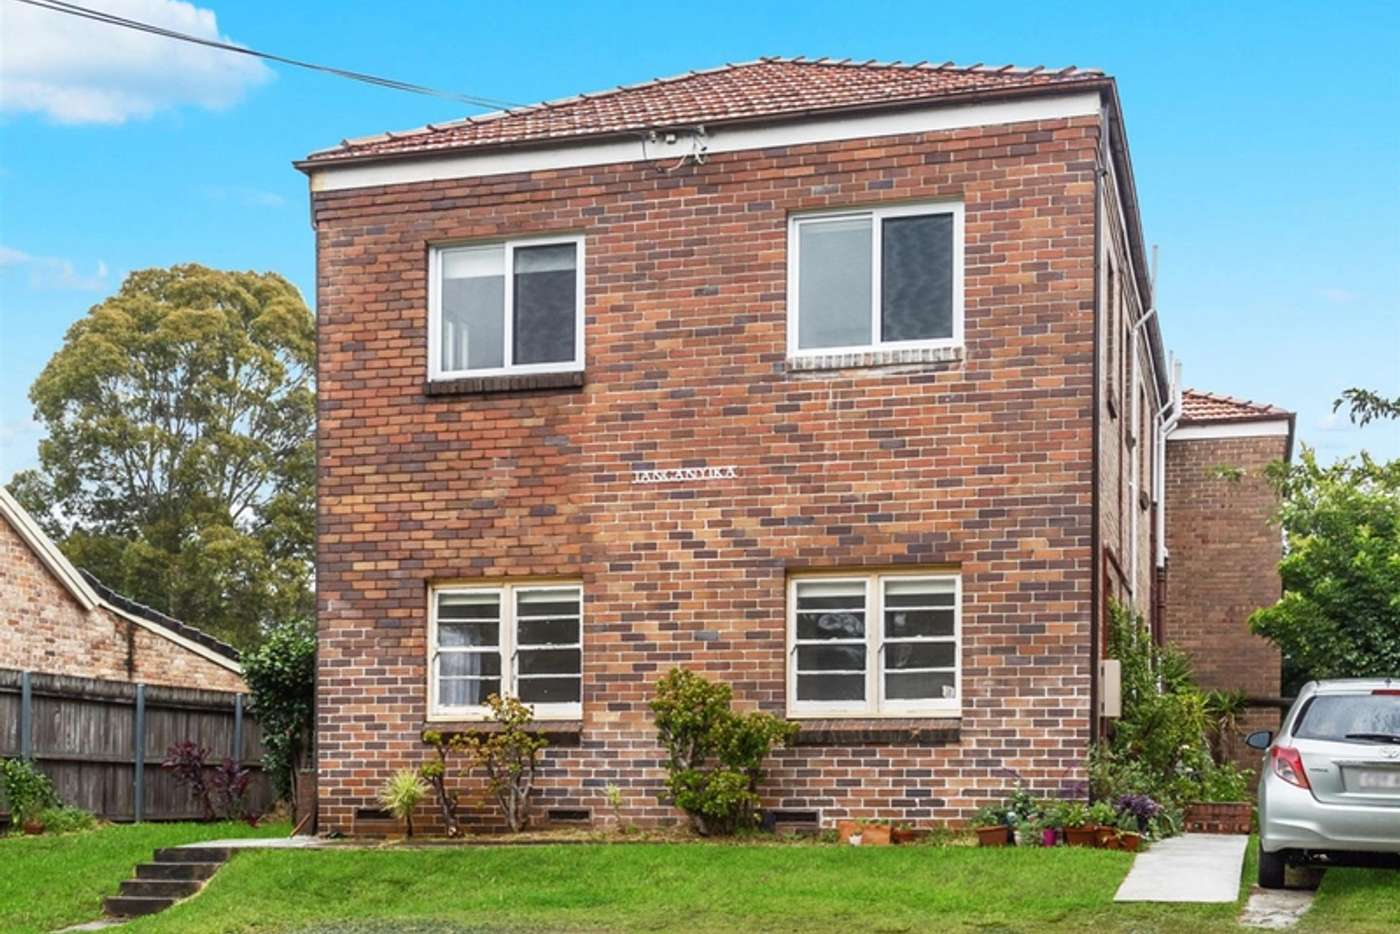 Main view of Homely blockOfUnits listing, 5 Constitution Road, Dulwich Hill NSW 2203